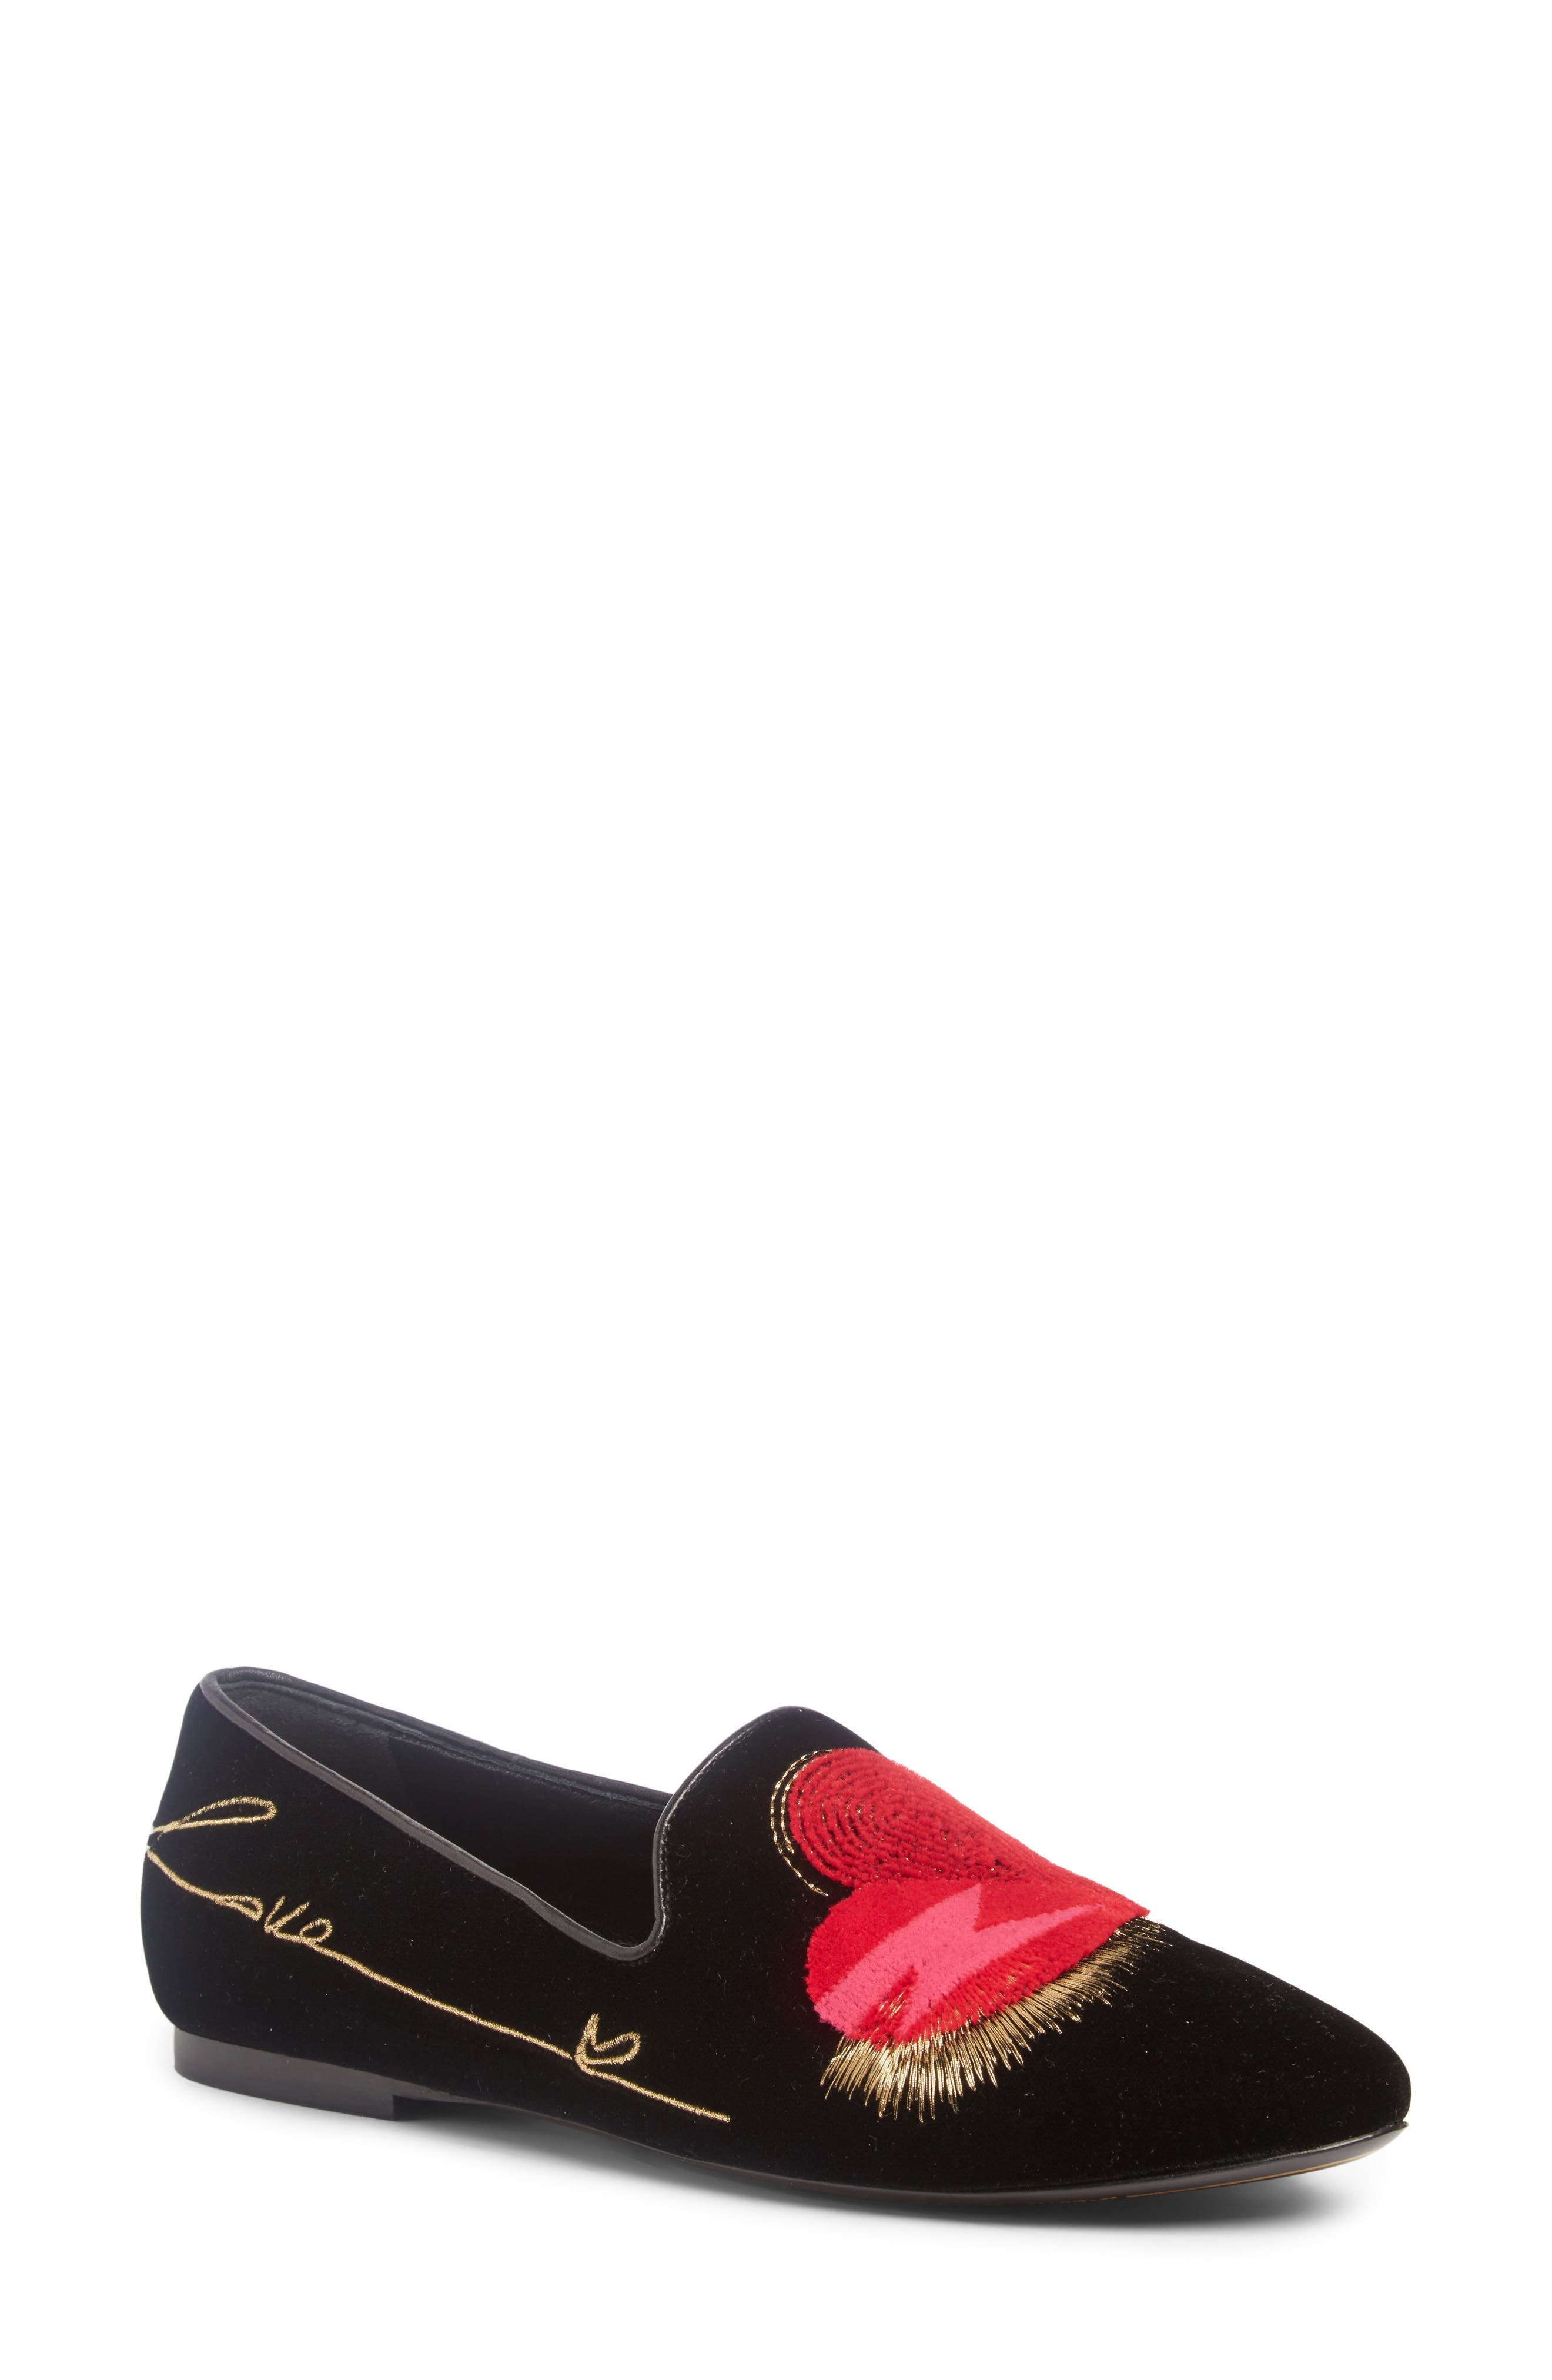 Saint Laurent Hearts Smoking Slipper (Women)